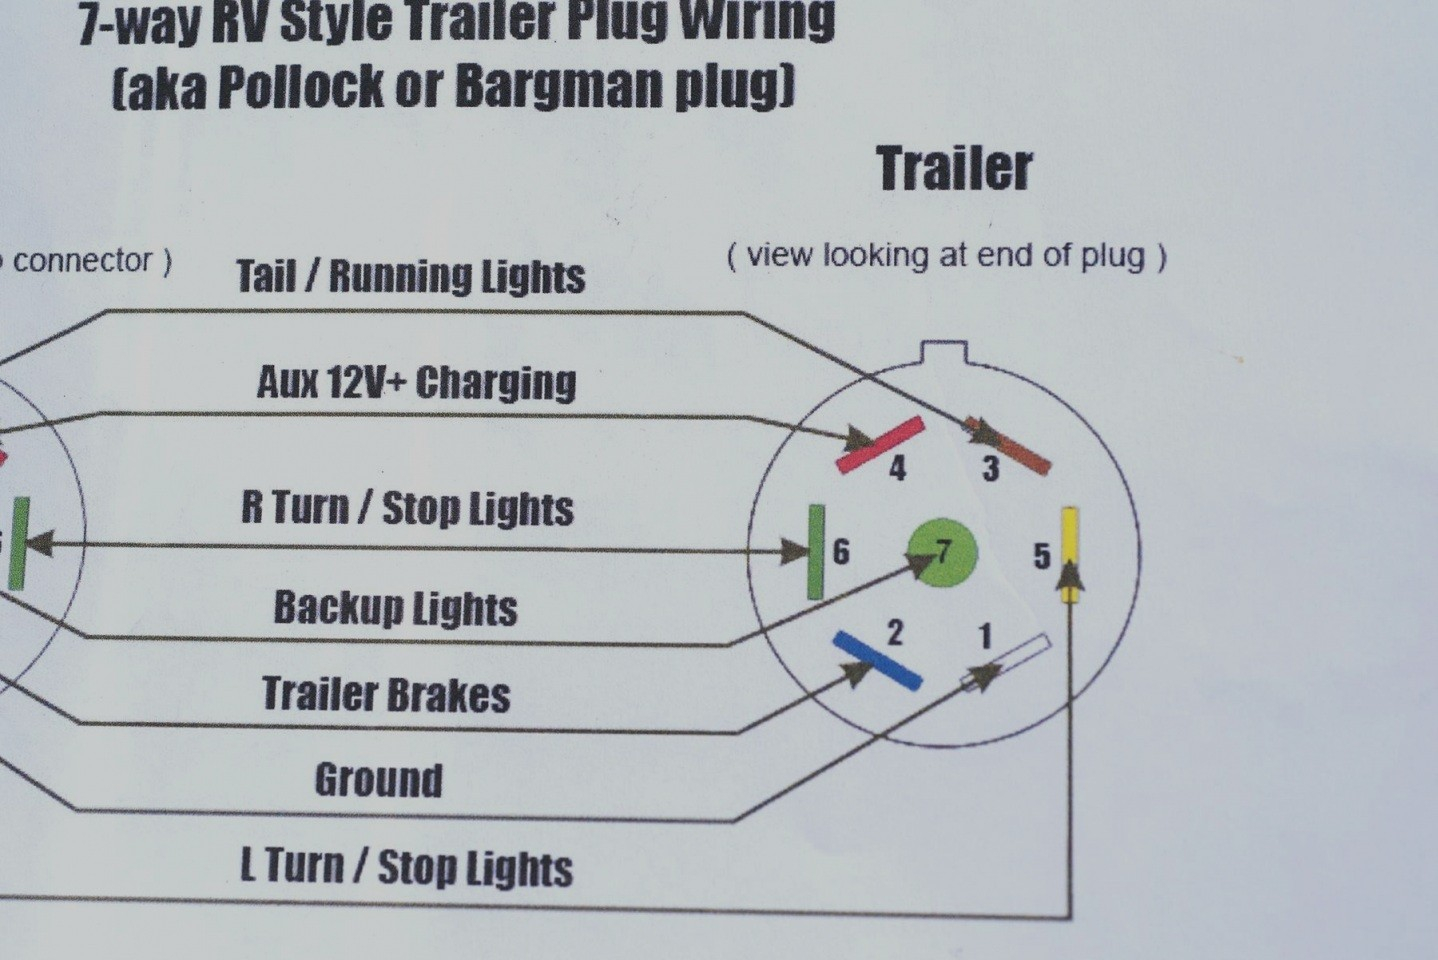 Trailer Wiring Diagram For South Africa | Wiring Library - Trailer Plug Wiring Diagram 7 Way South Africa